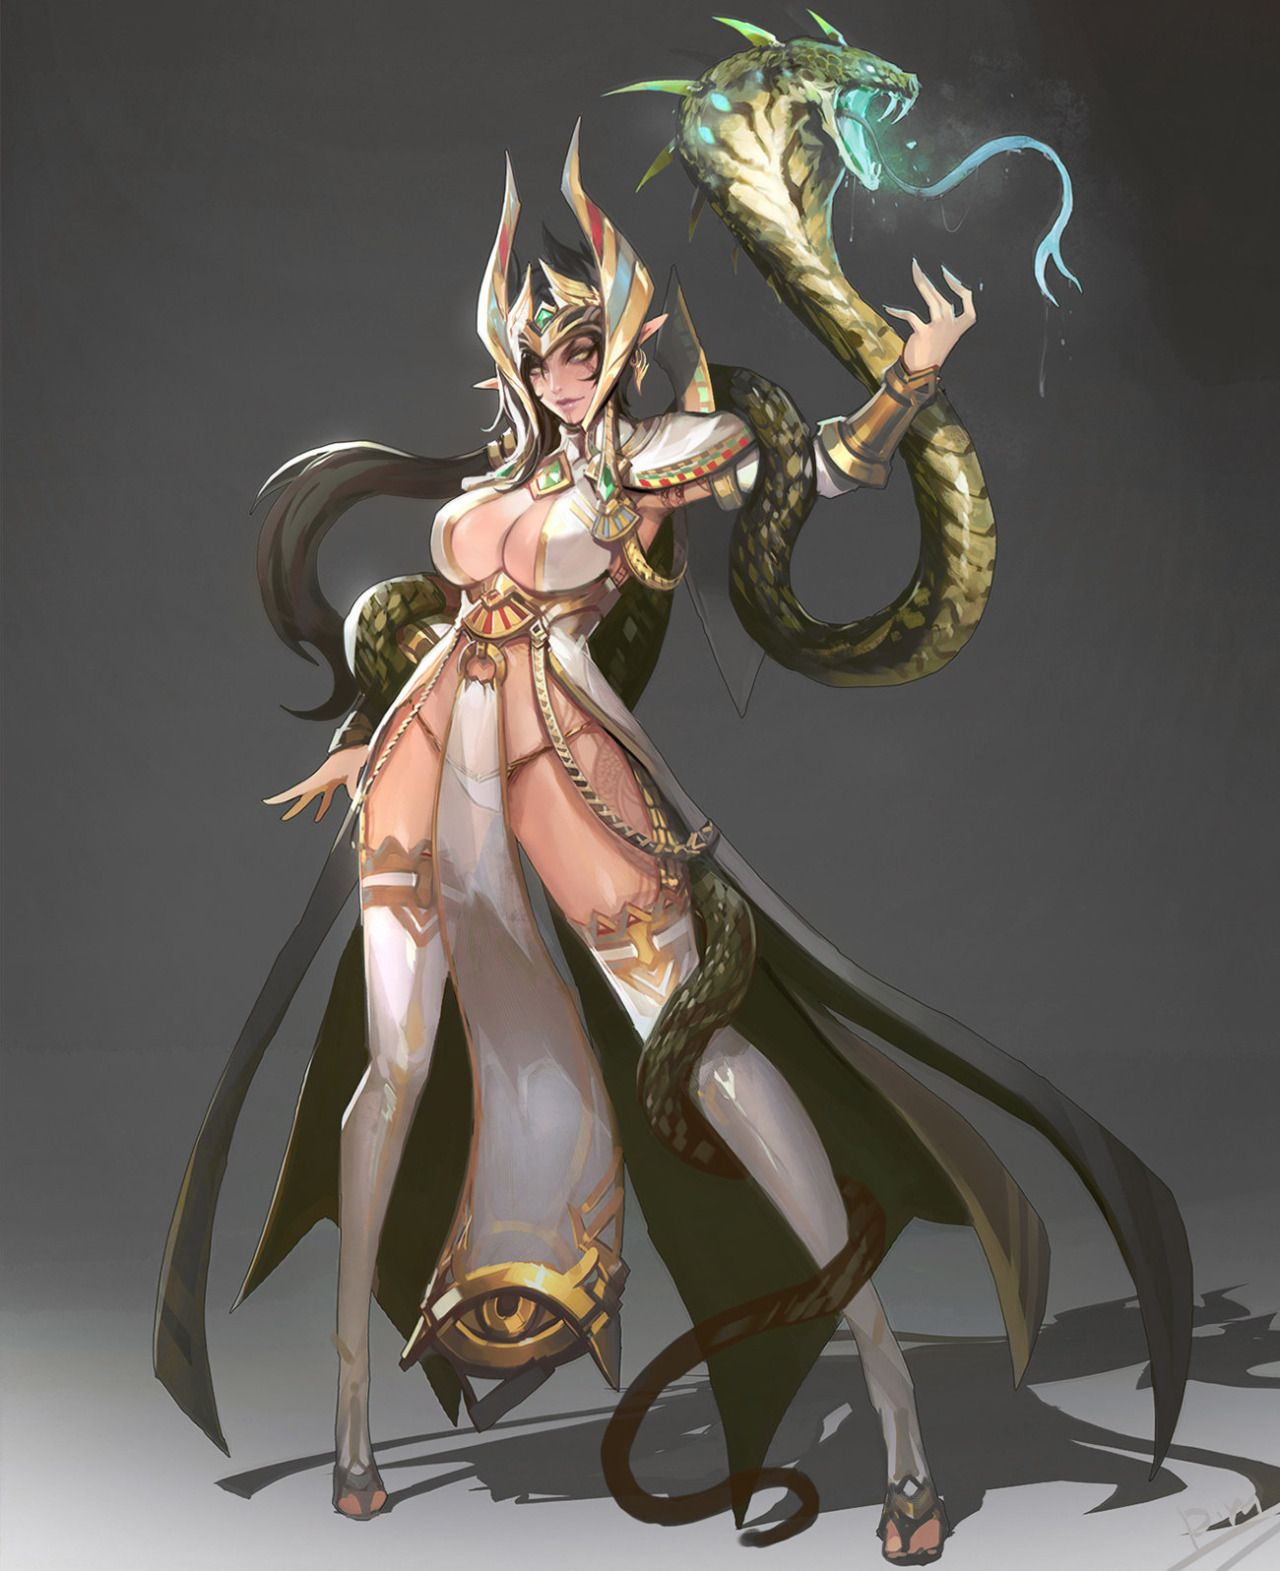 Hentai Characters throughout daily hentai art | character design | pinterest | amazing art